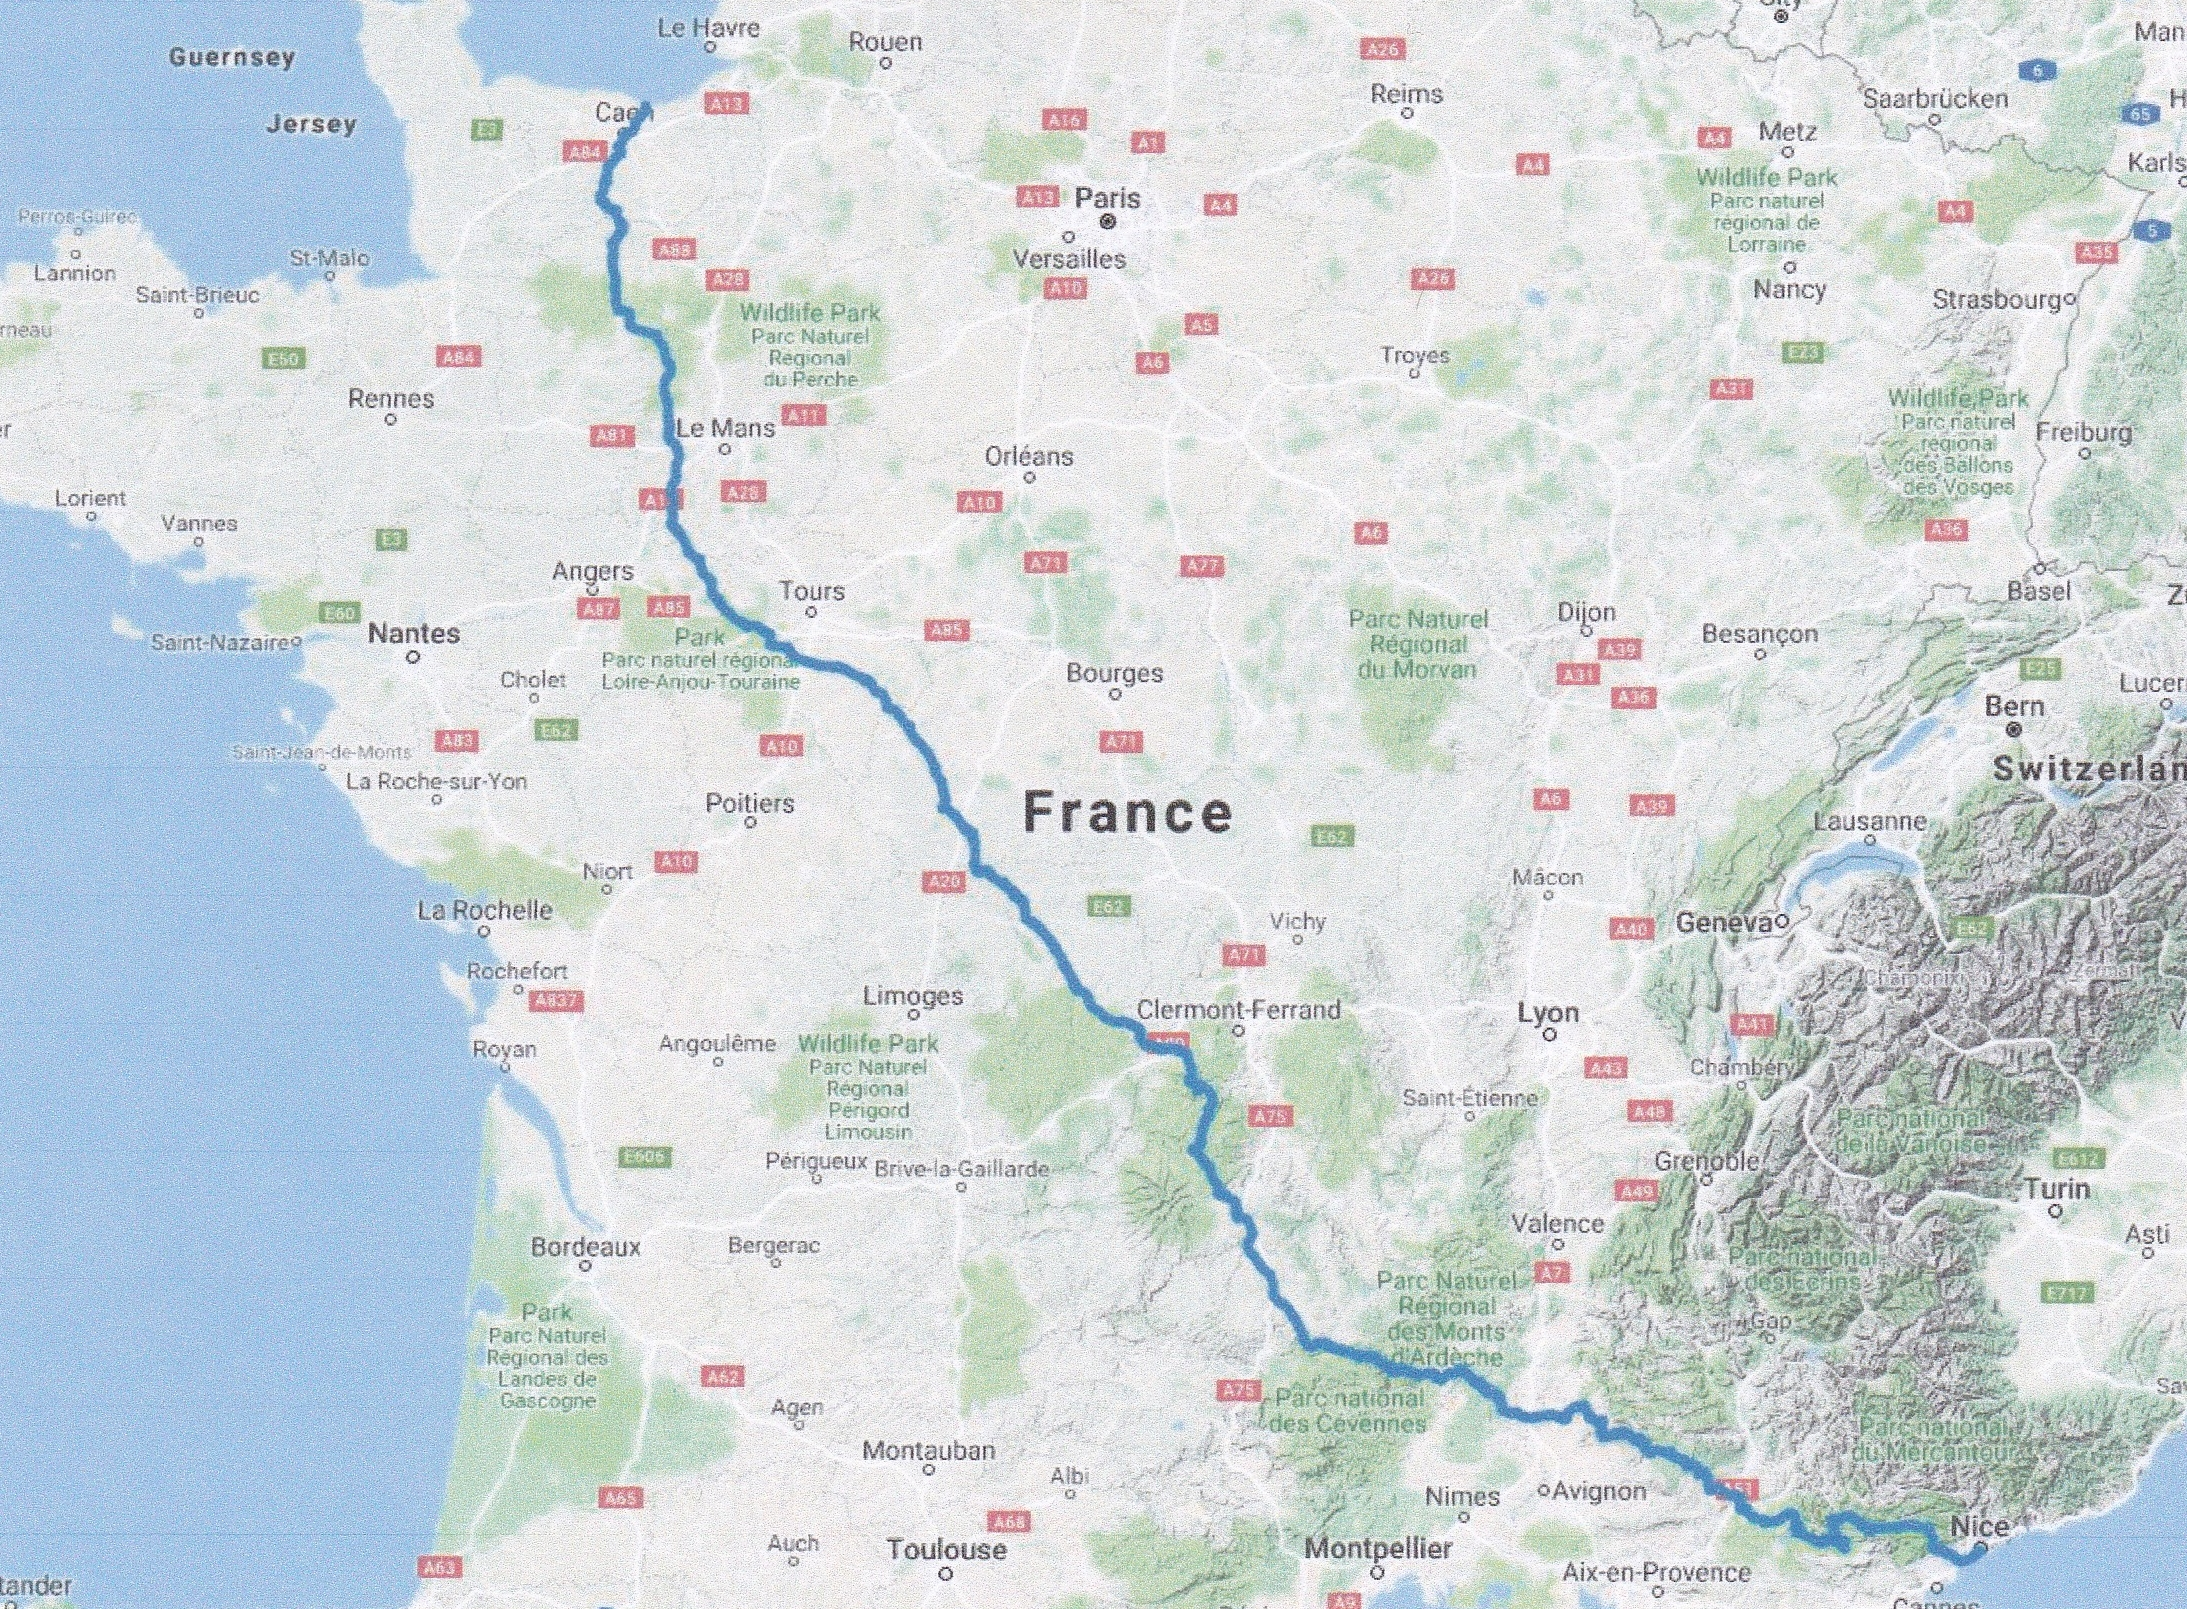 - The route across France